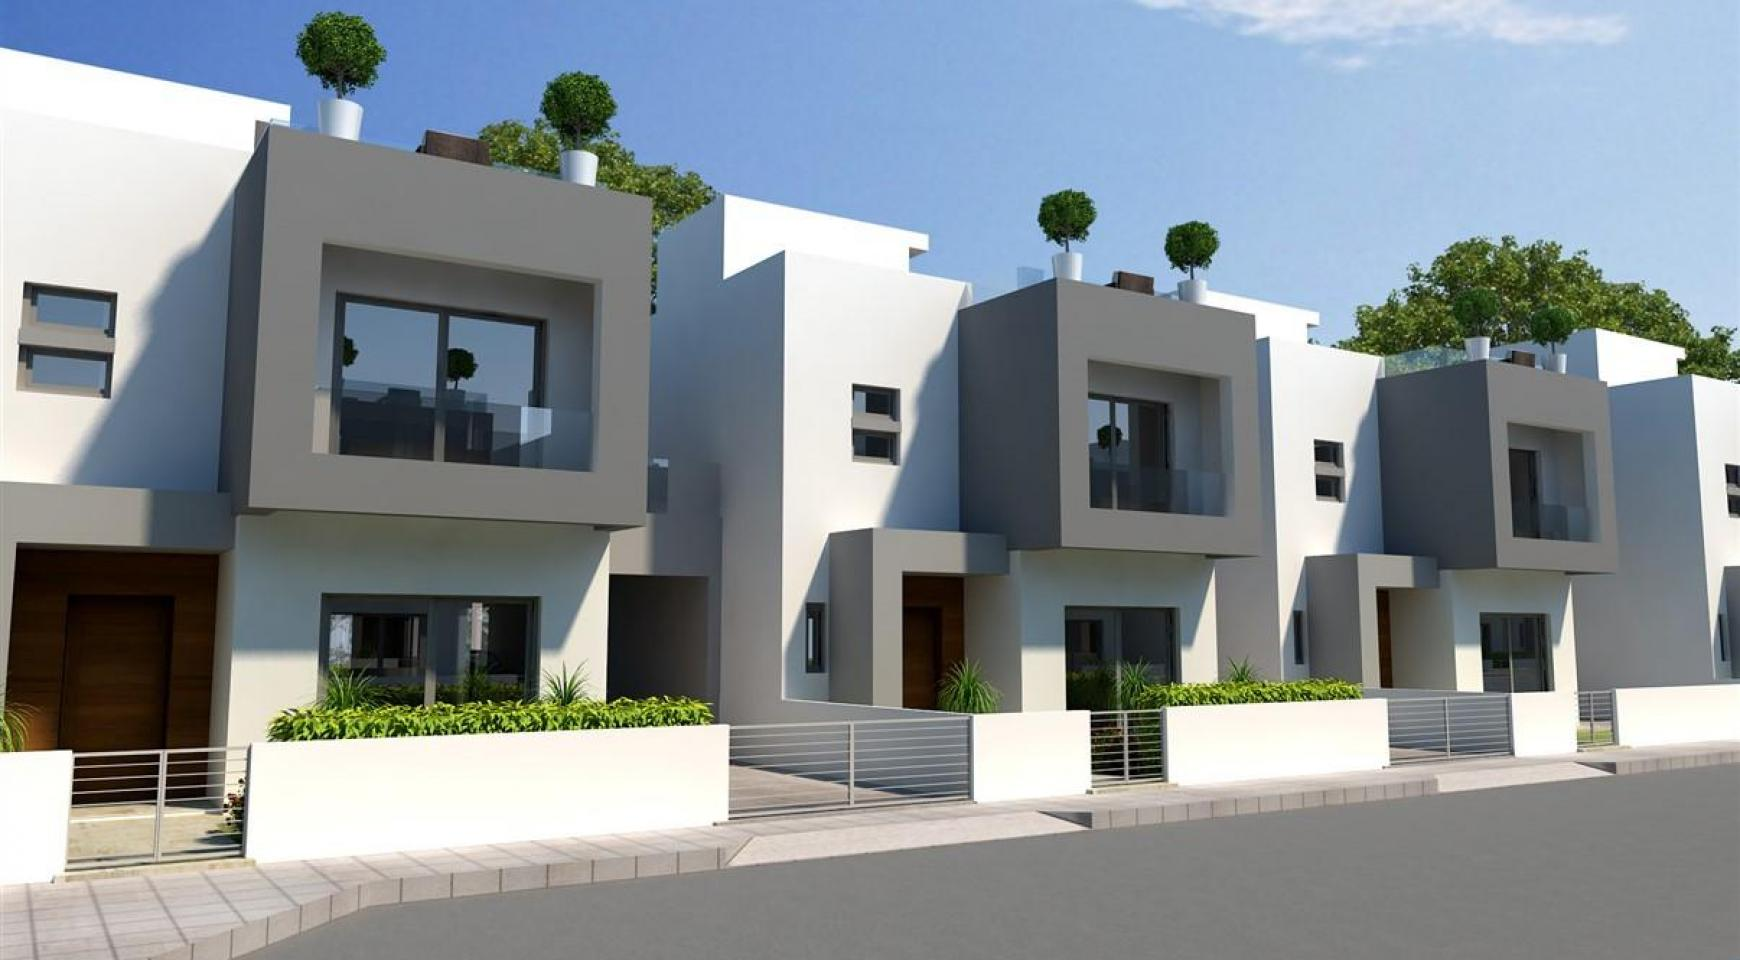 3 Bedroom Villa within a New Project - 36